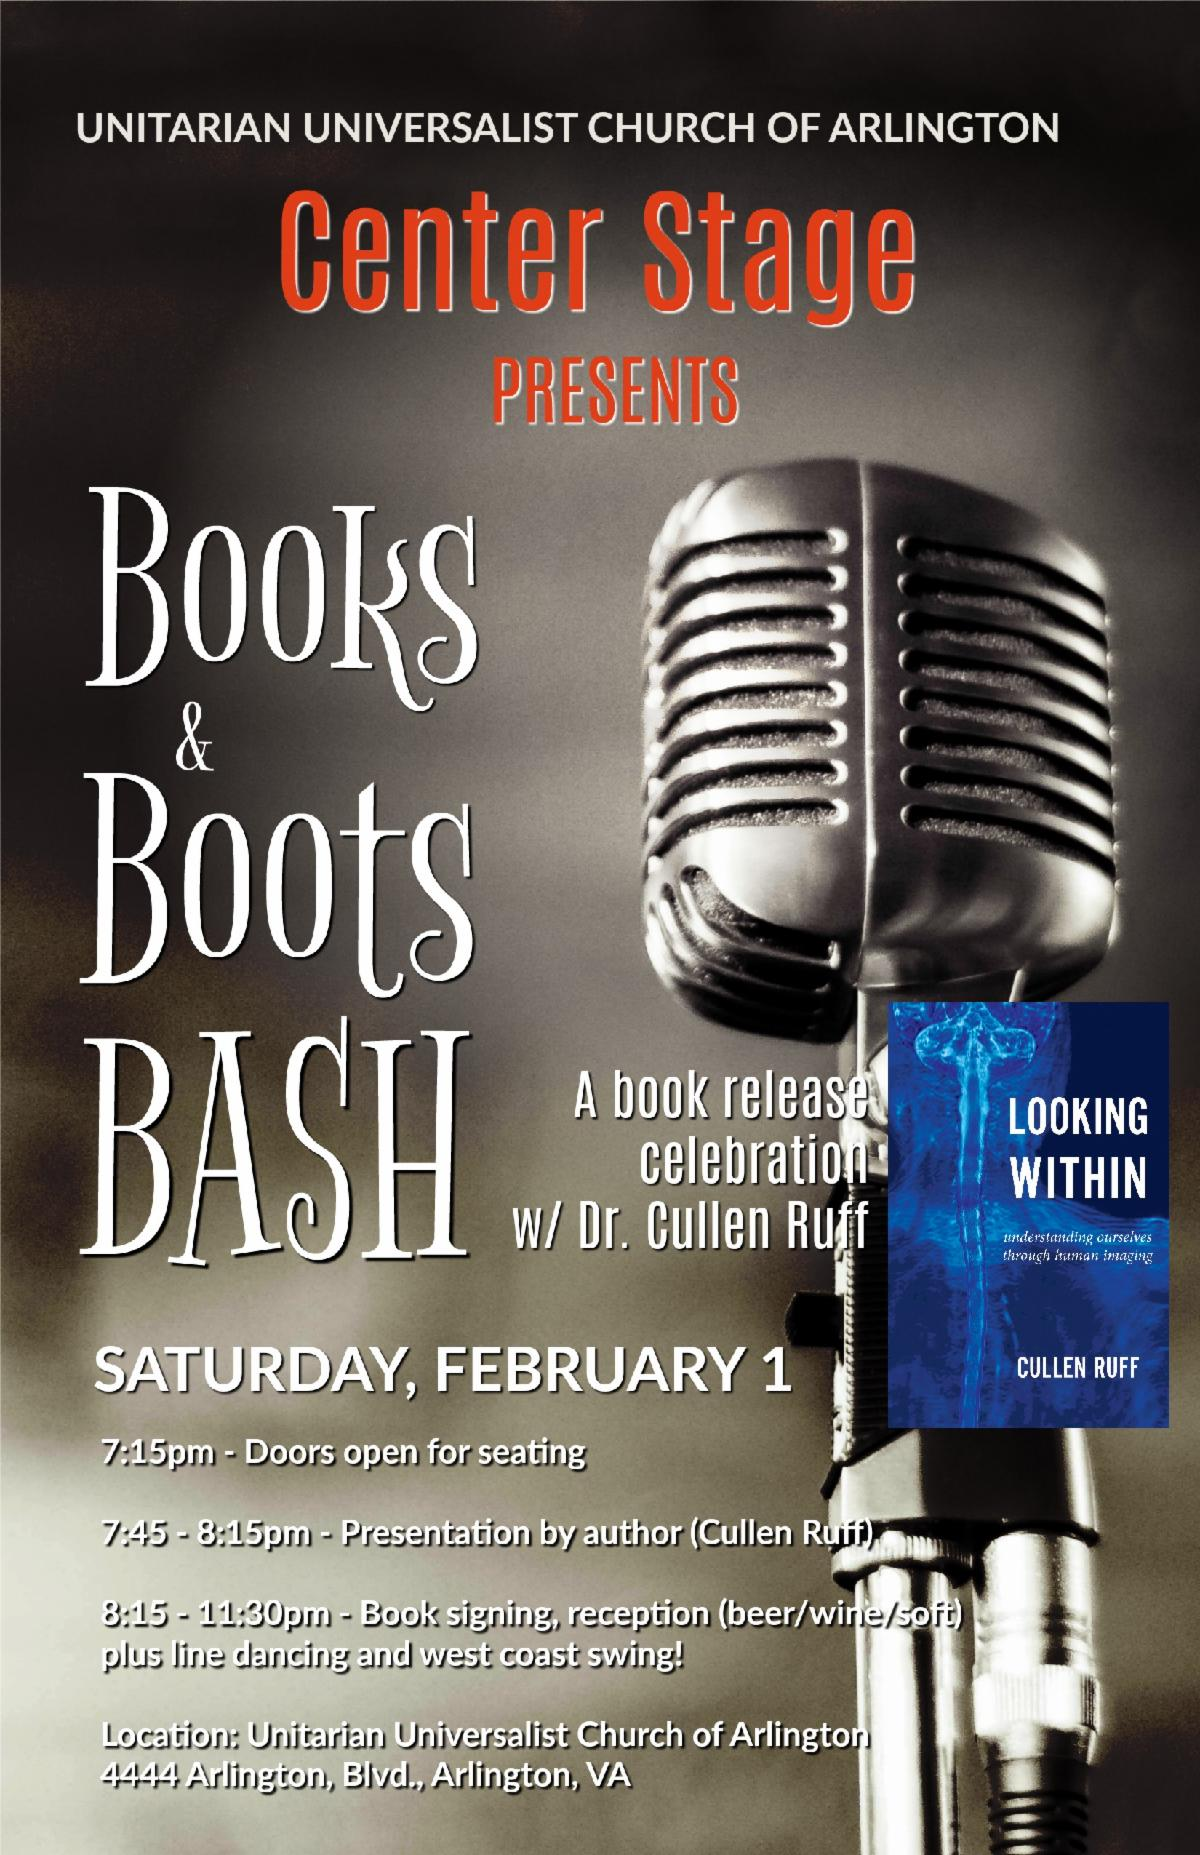 Books & Boots BASH - Feb 1, 7:15pm